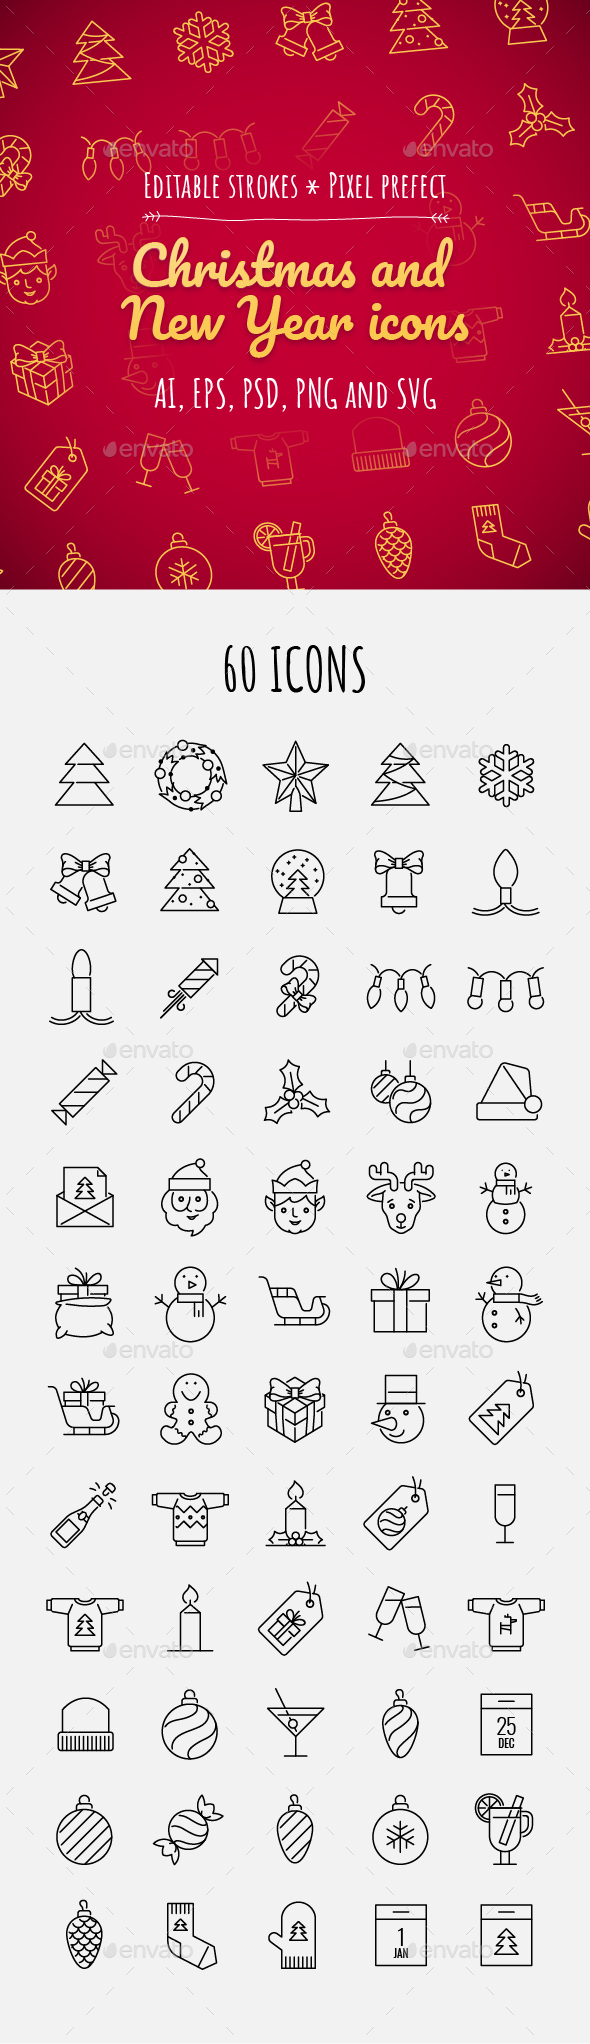 60 Christmas and New year icons - Seasonal Icons